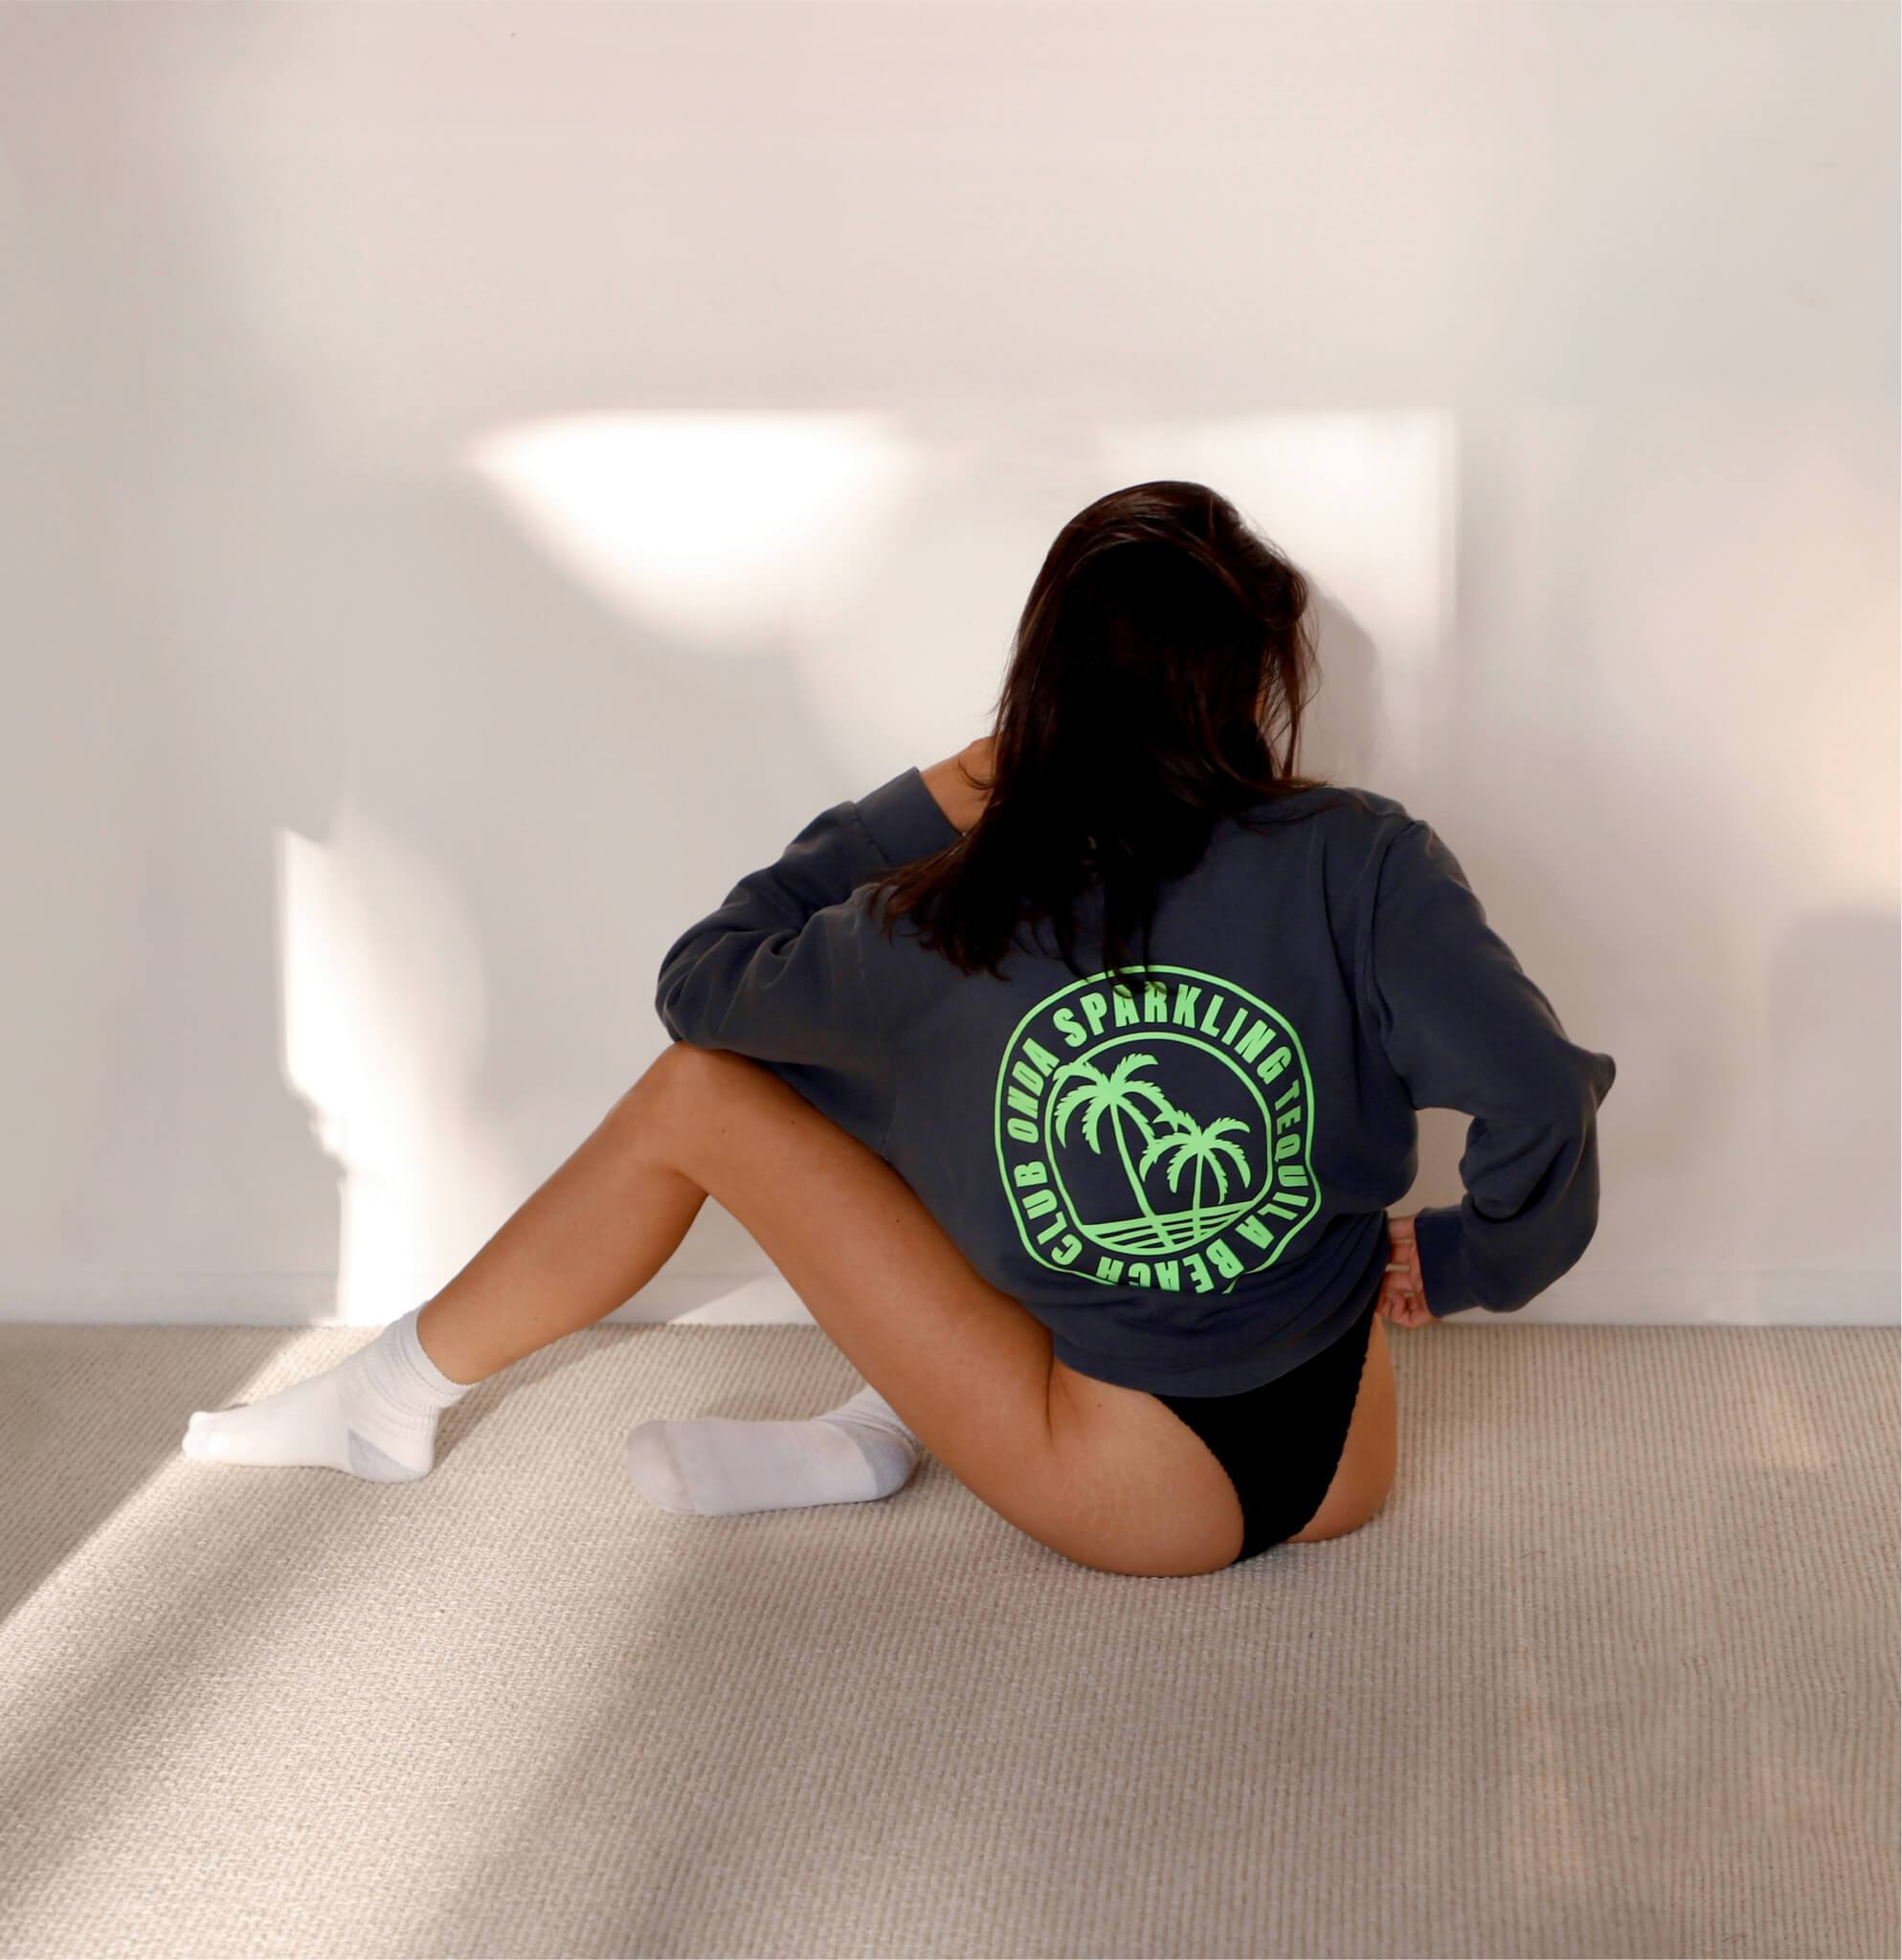 Beach Club Crewneck Sweatshirt